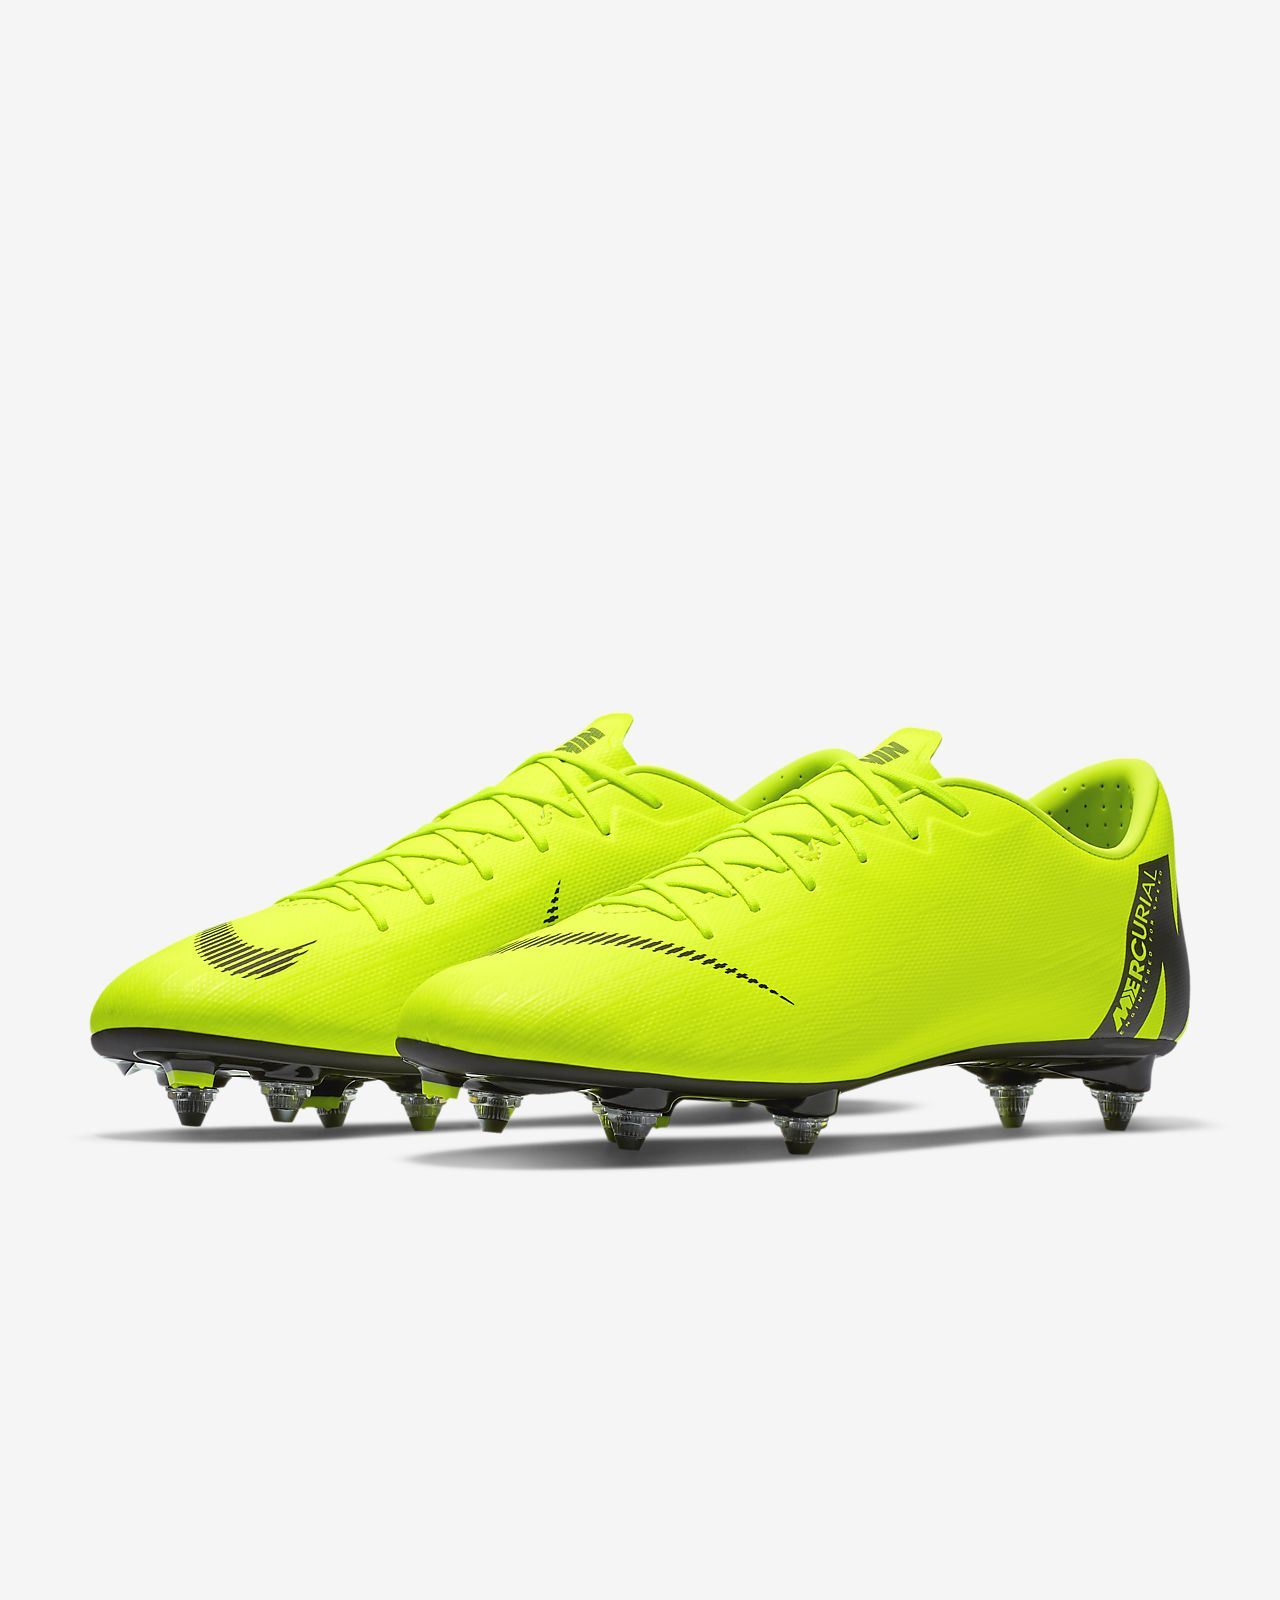 3504e6819 Nike Mercurial Vapor XII Academy SG-PRO Soft-Ground Football Boot ...